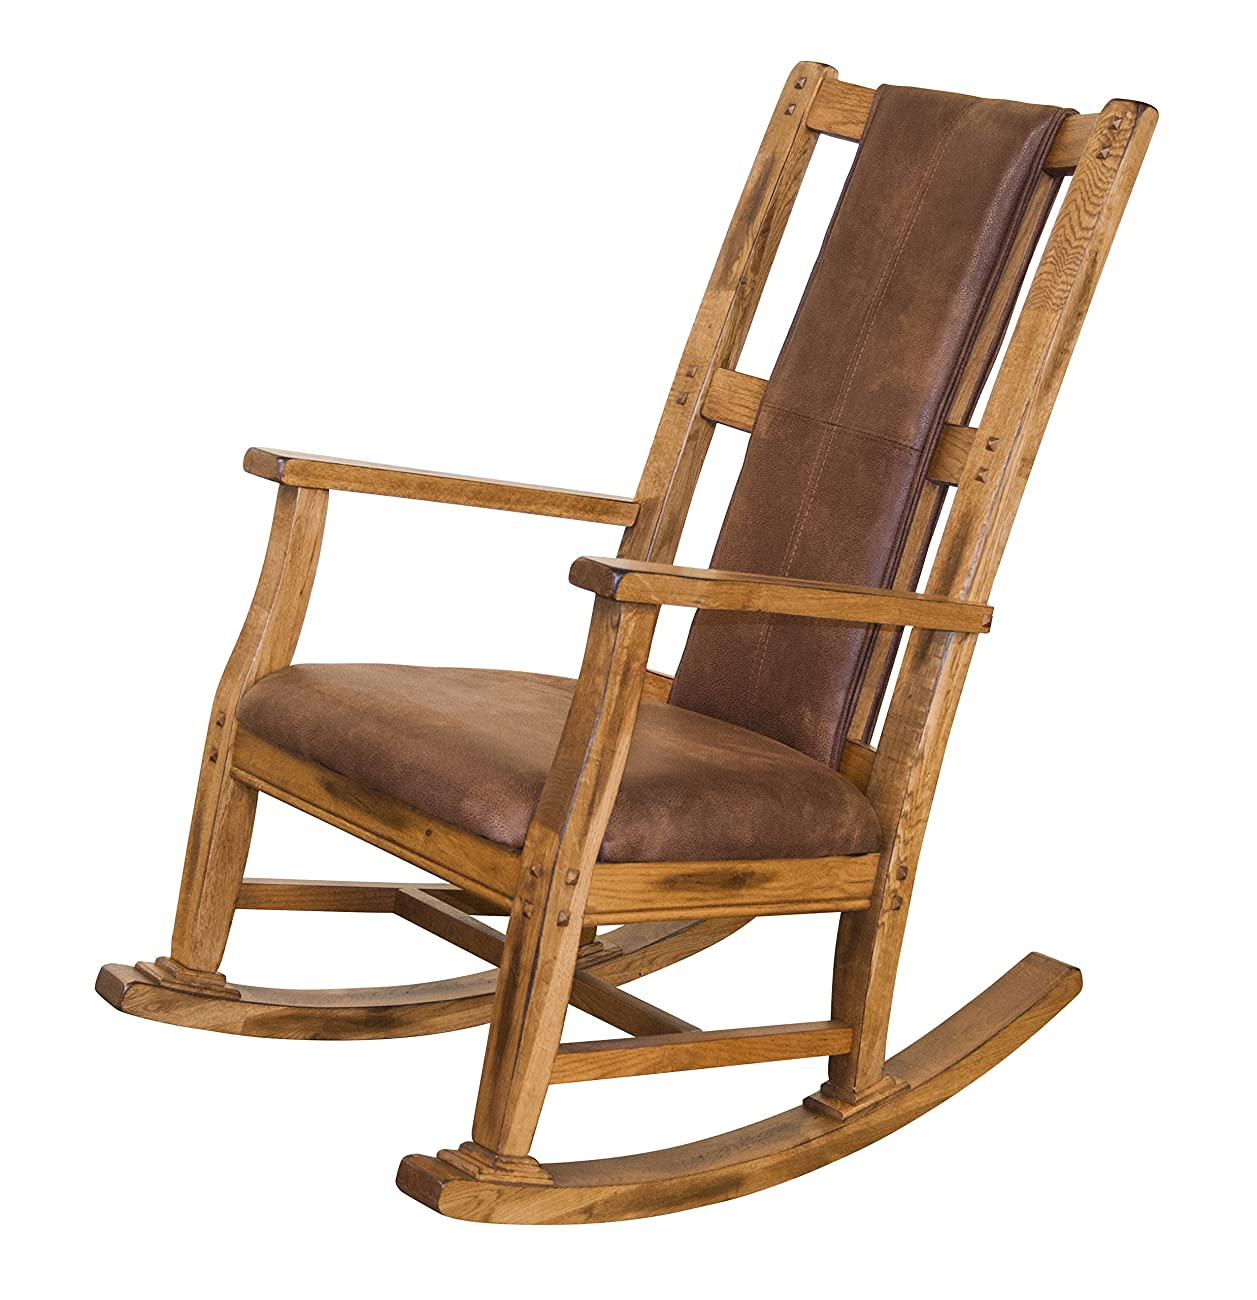 Sunny Designs 1935RO-2 Sedona Rocker with T-Fabric Seat and Back, Rustic Oak Finish 0